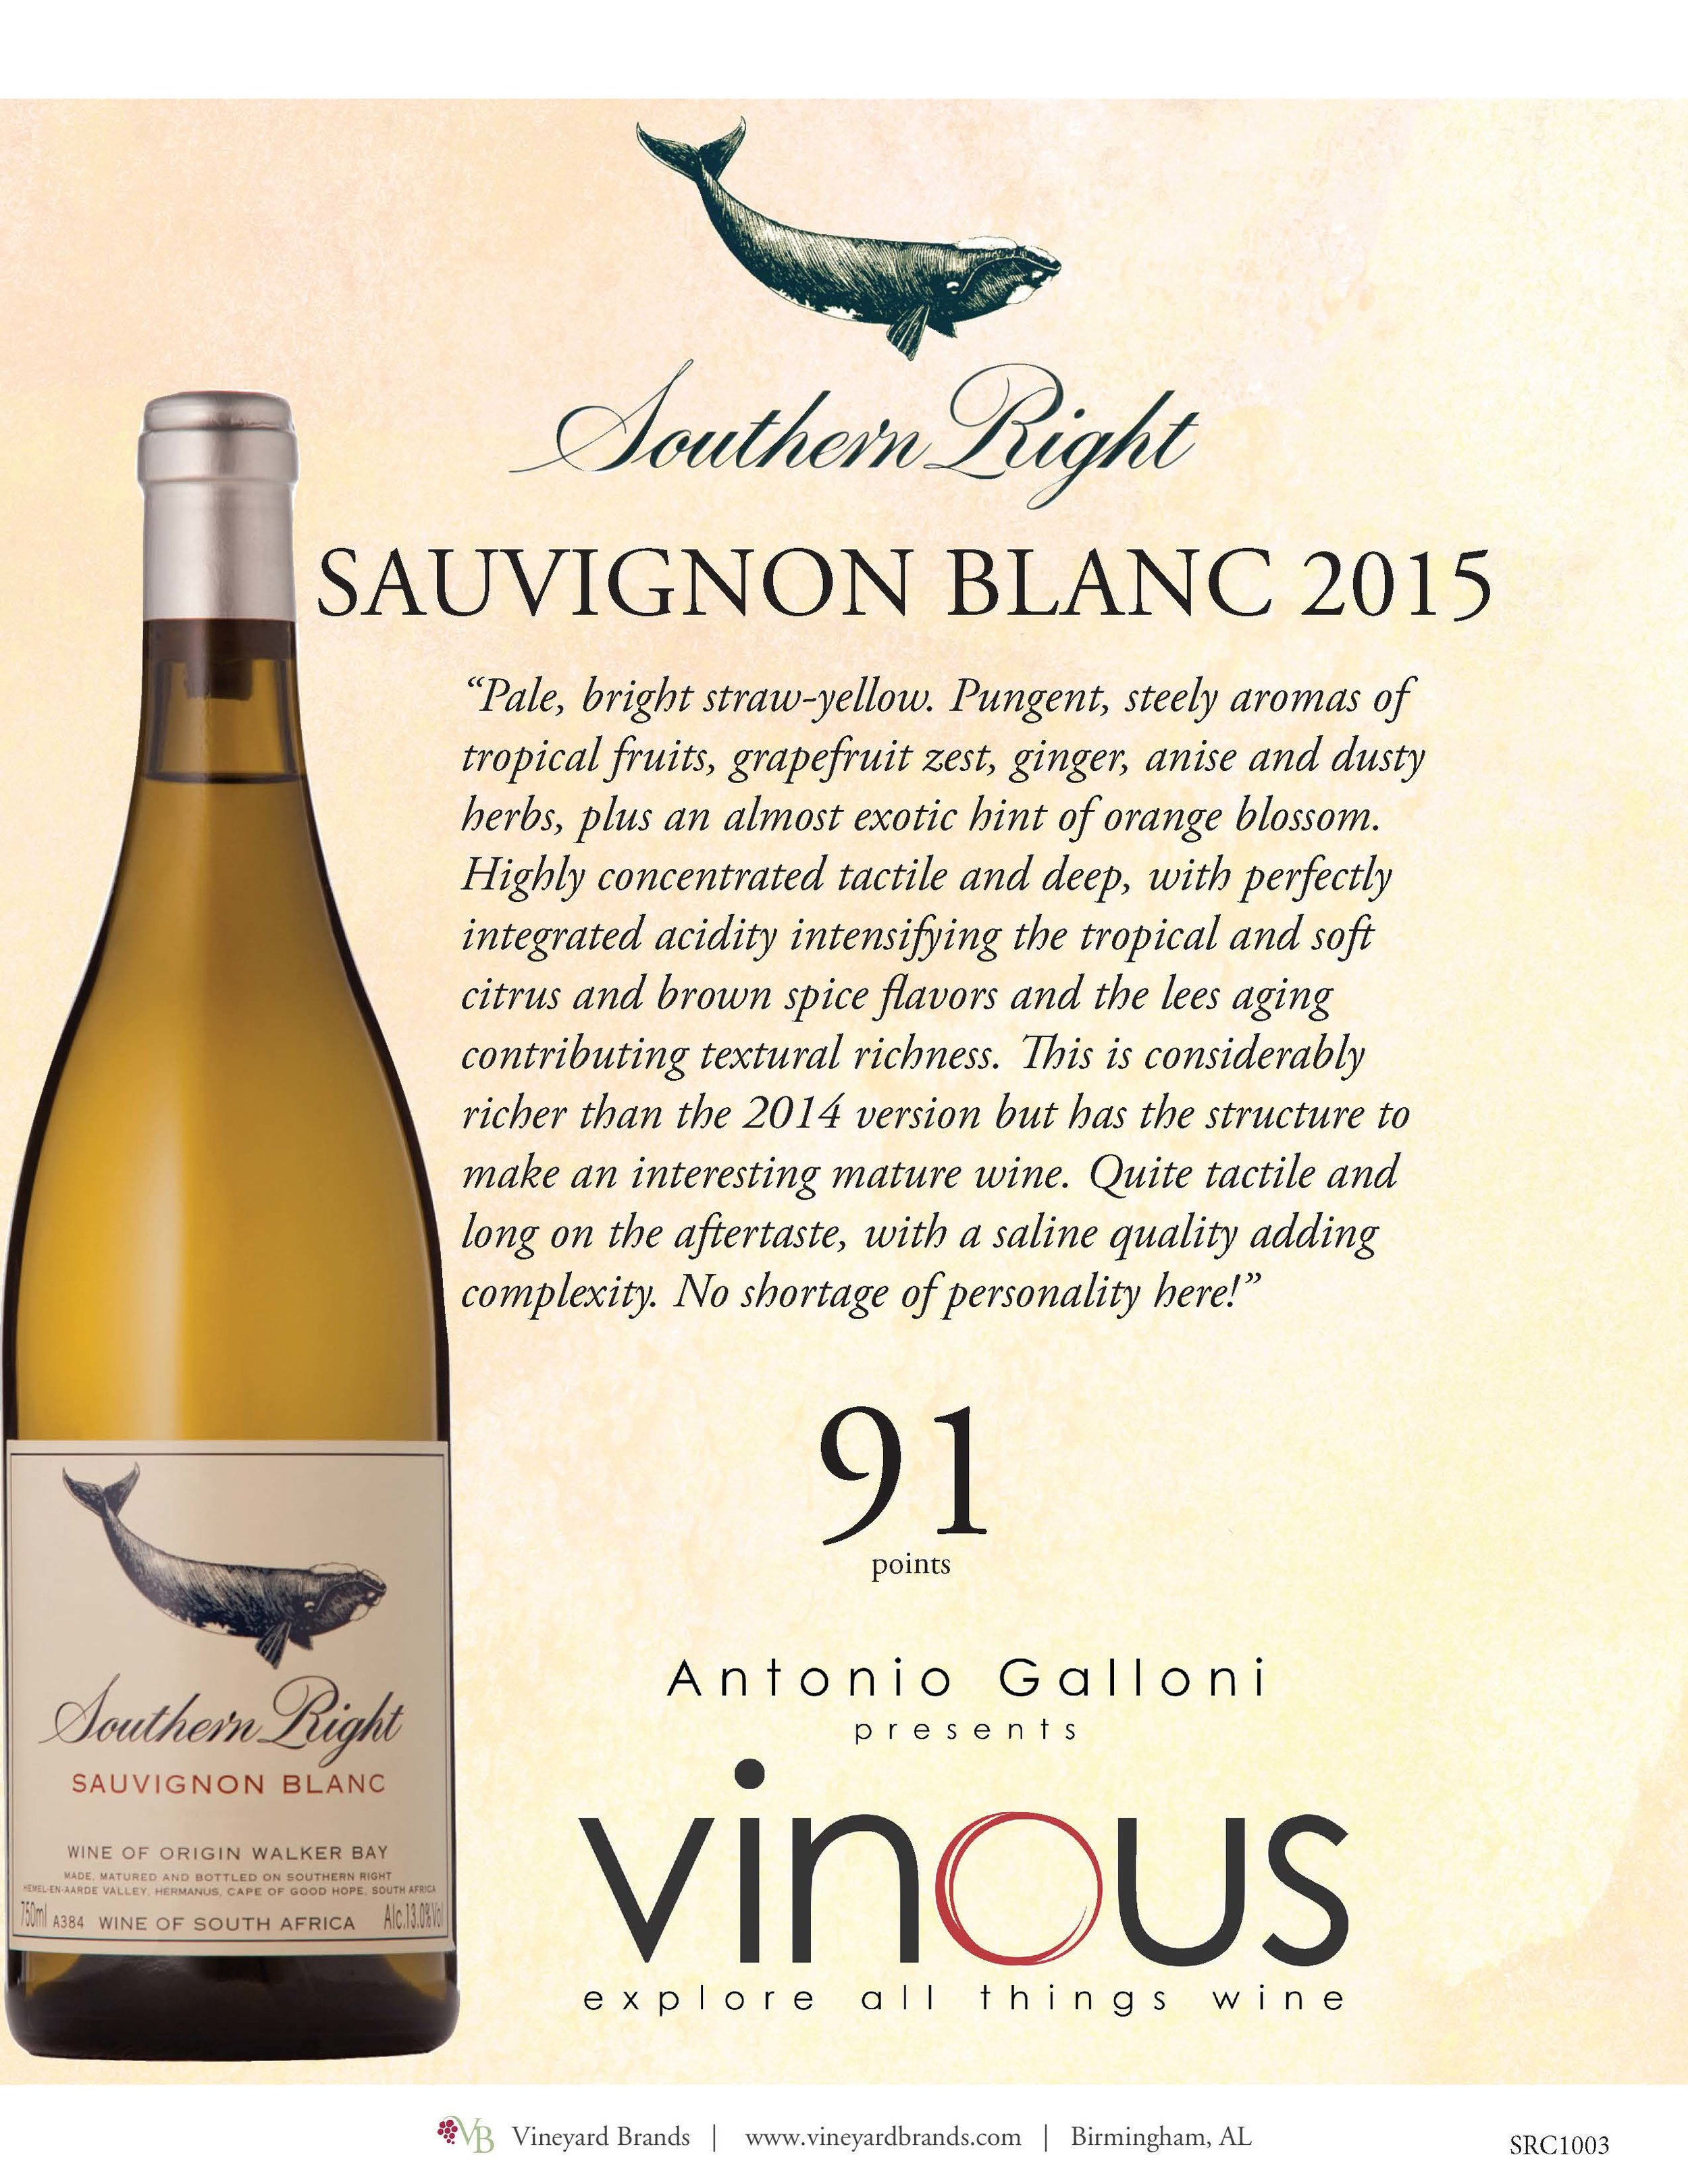 SouthernRightSauvignonBlanc2015.jpg